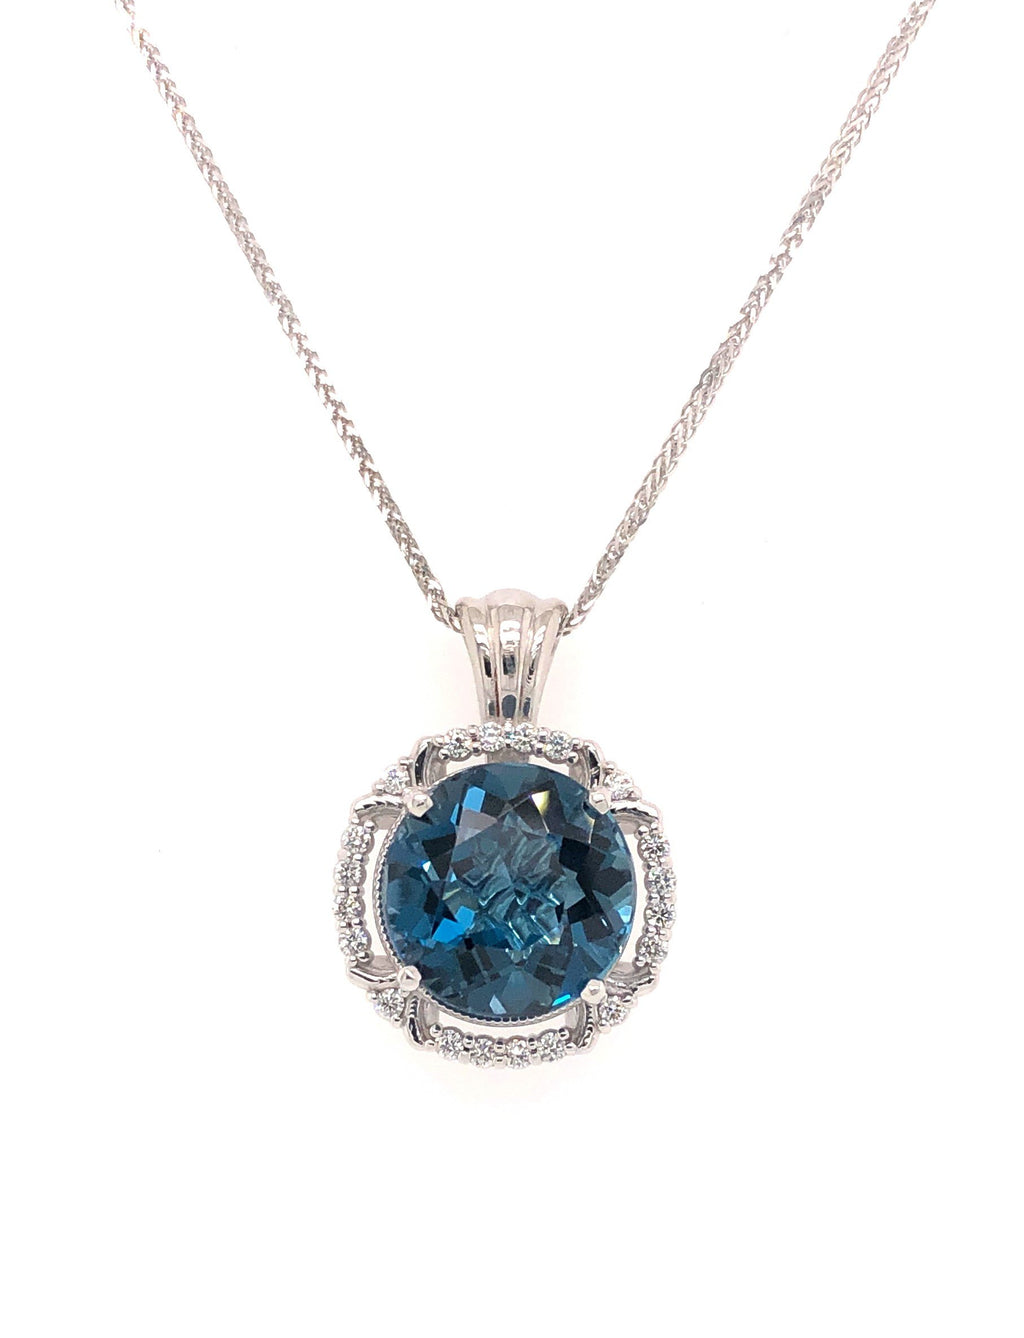 5 Carat London Blue Topaz and Diamond Pendant